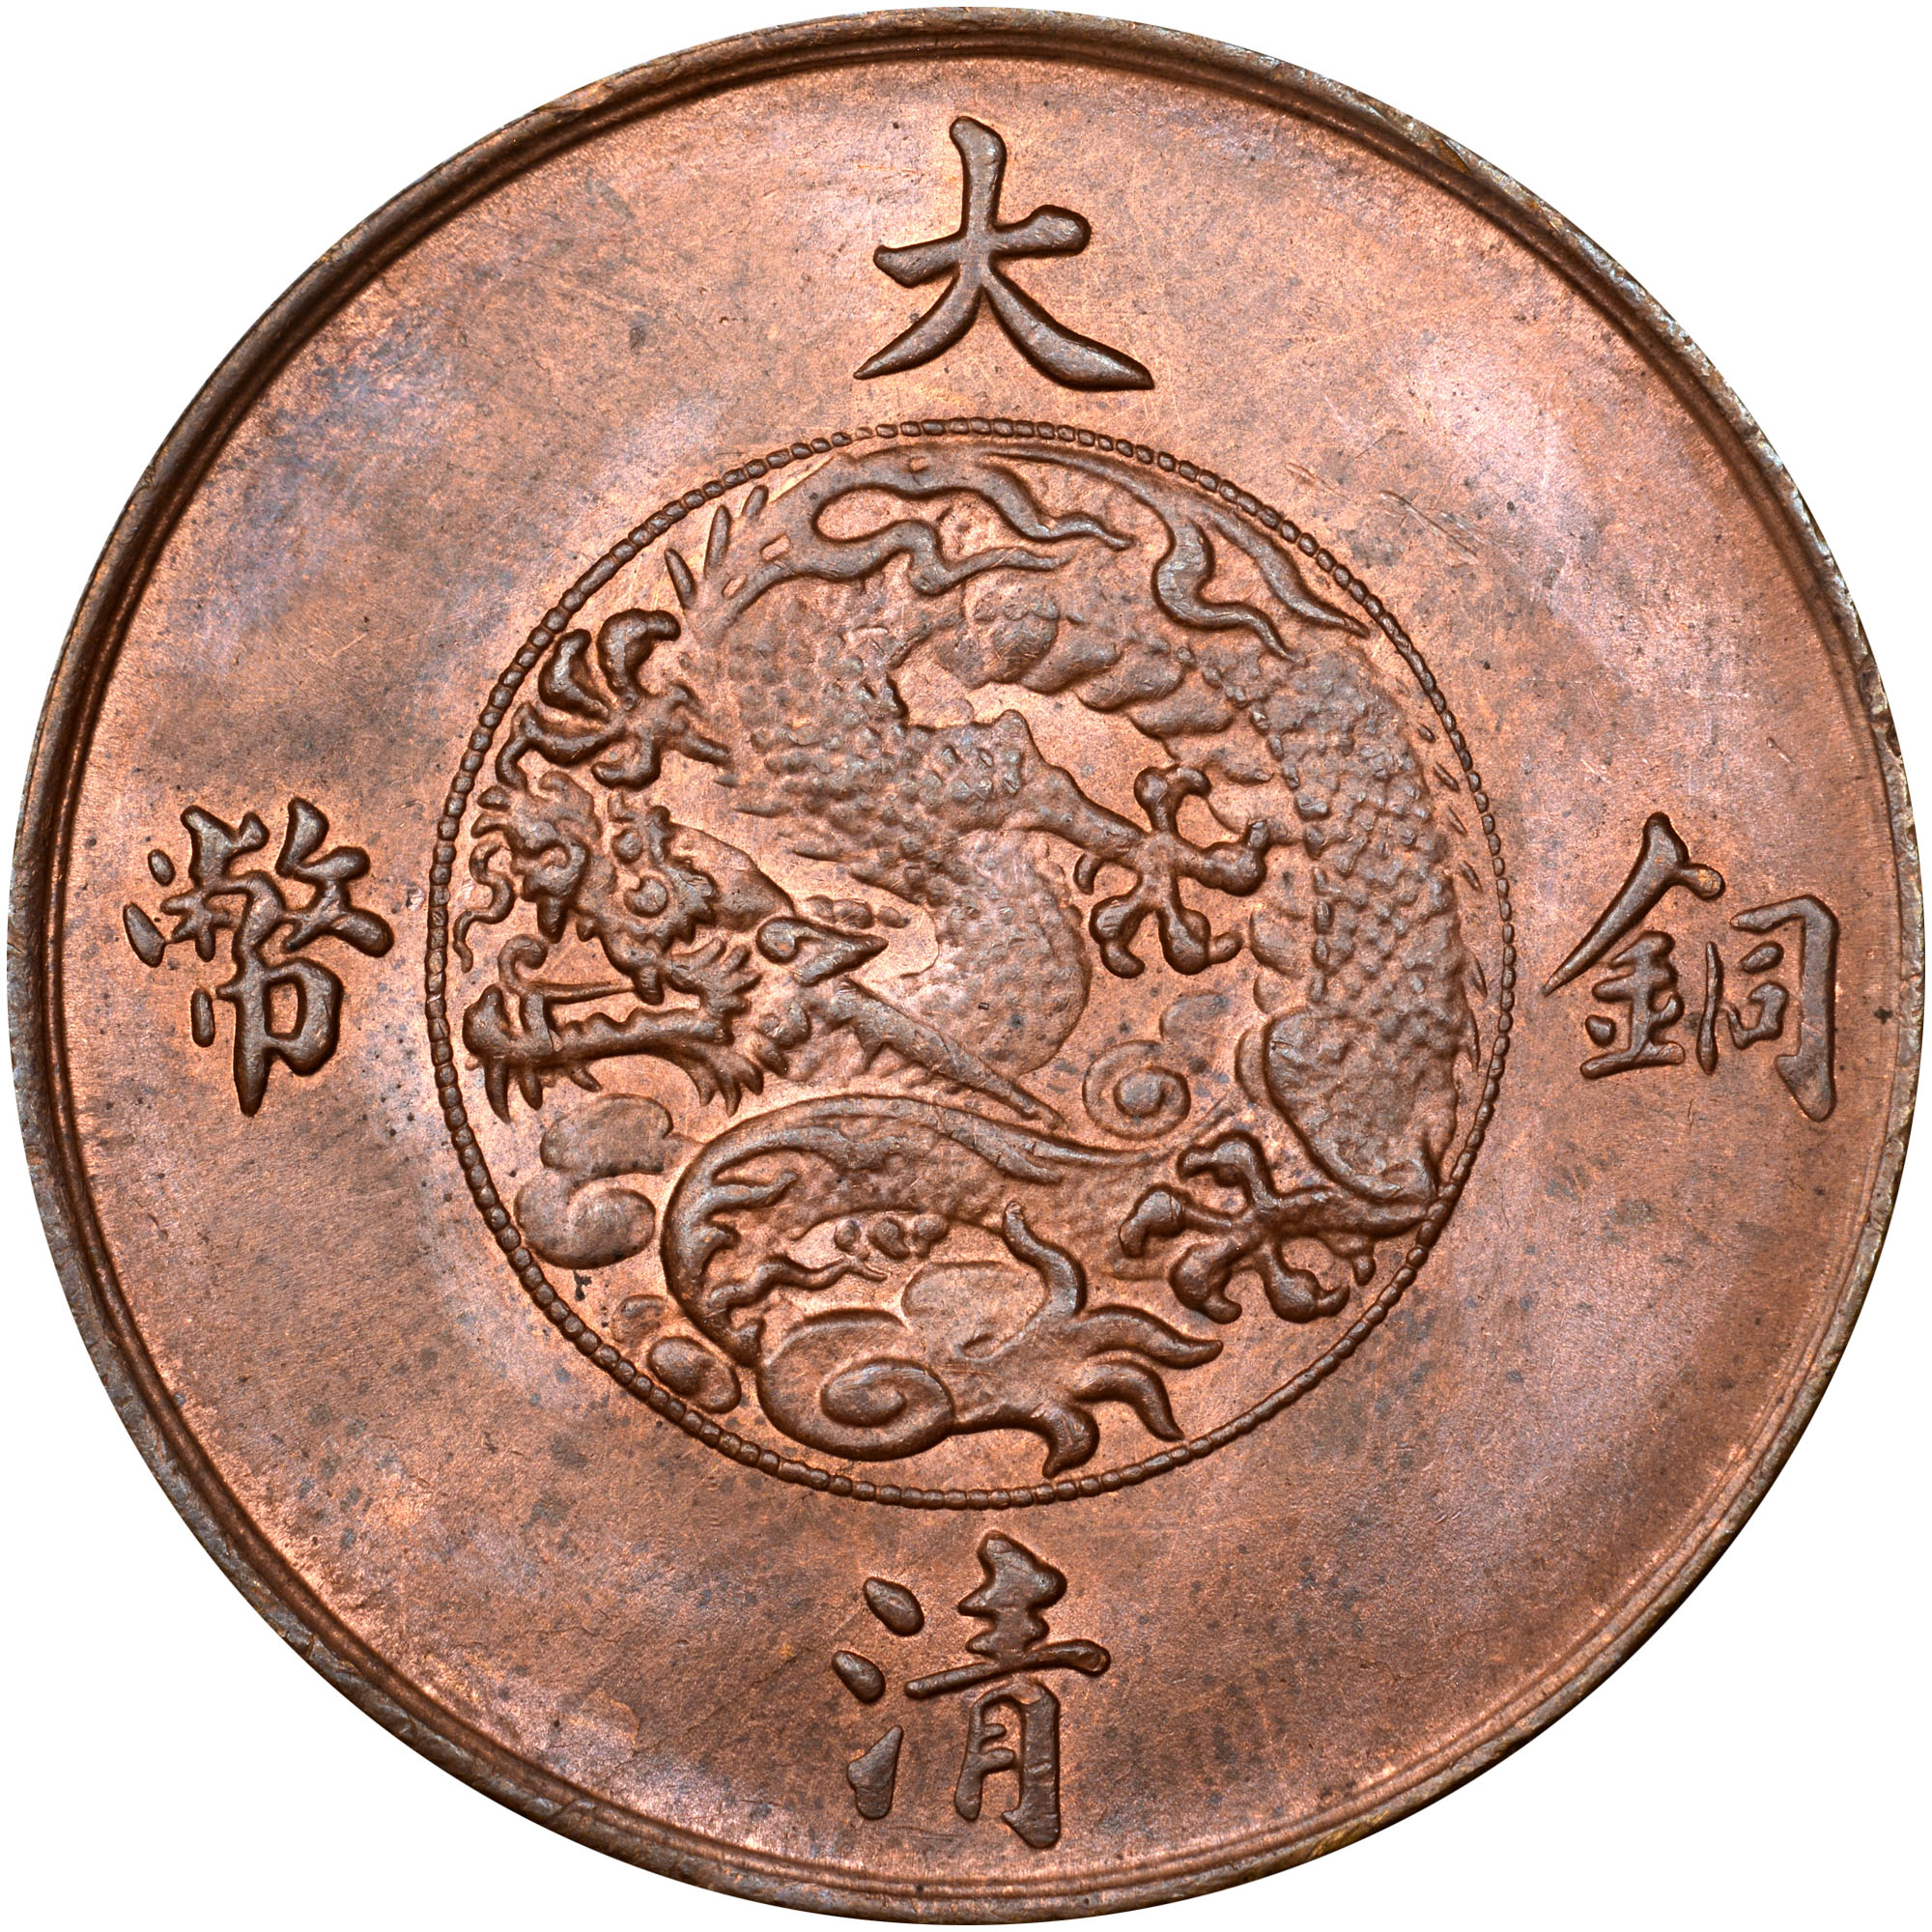 3(1911) China EMPIRE 10 Cash obverse